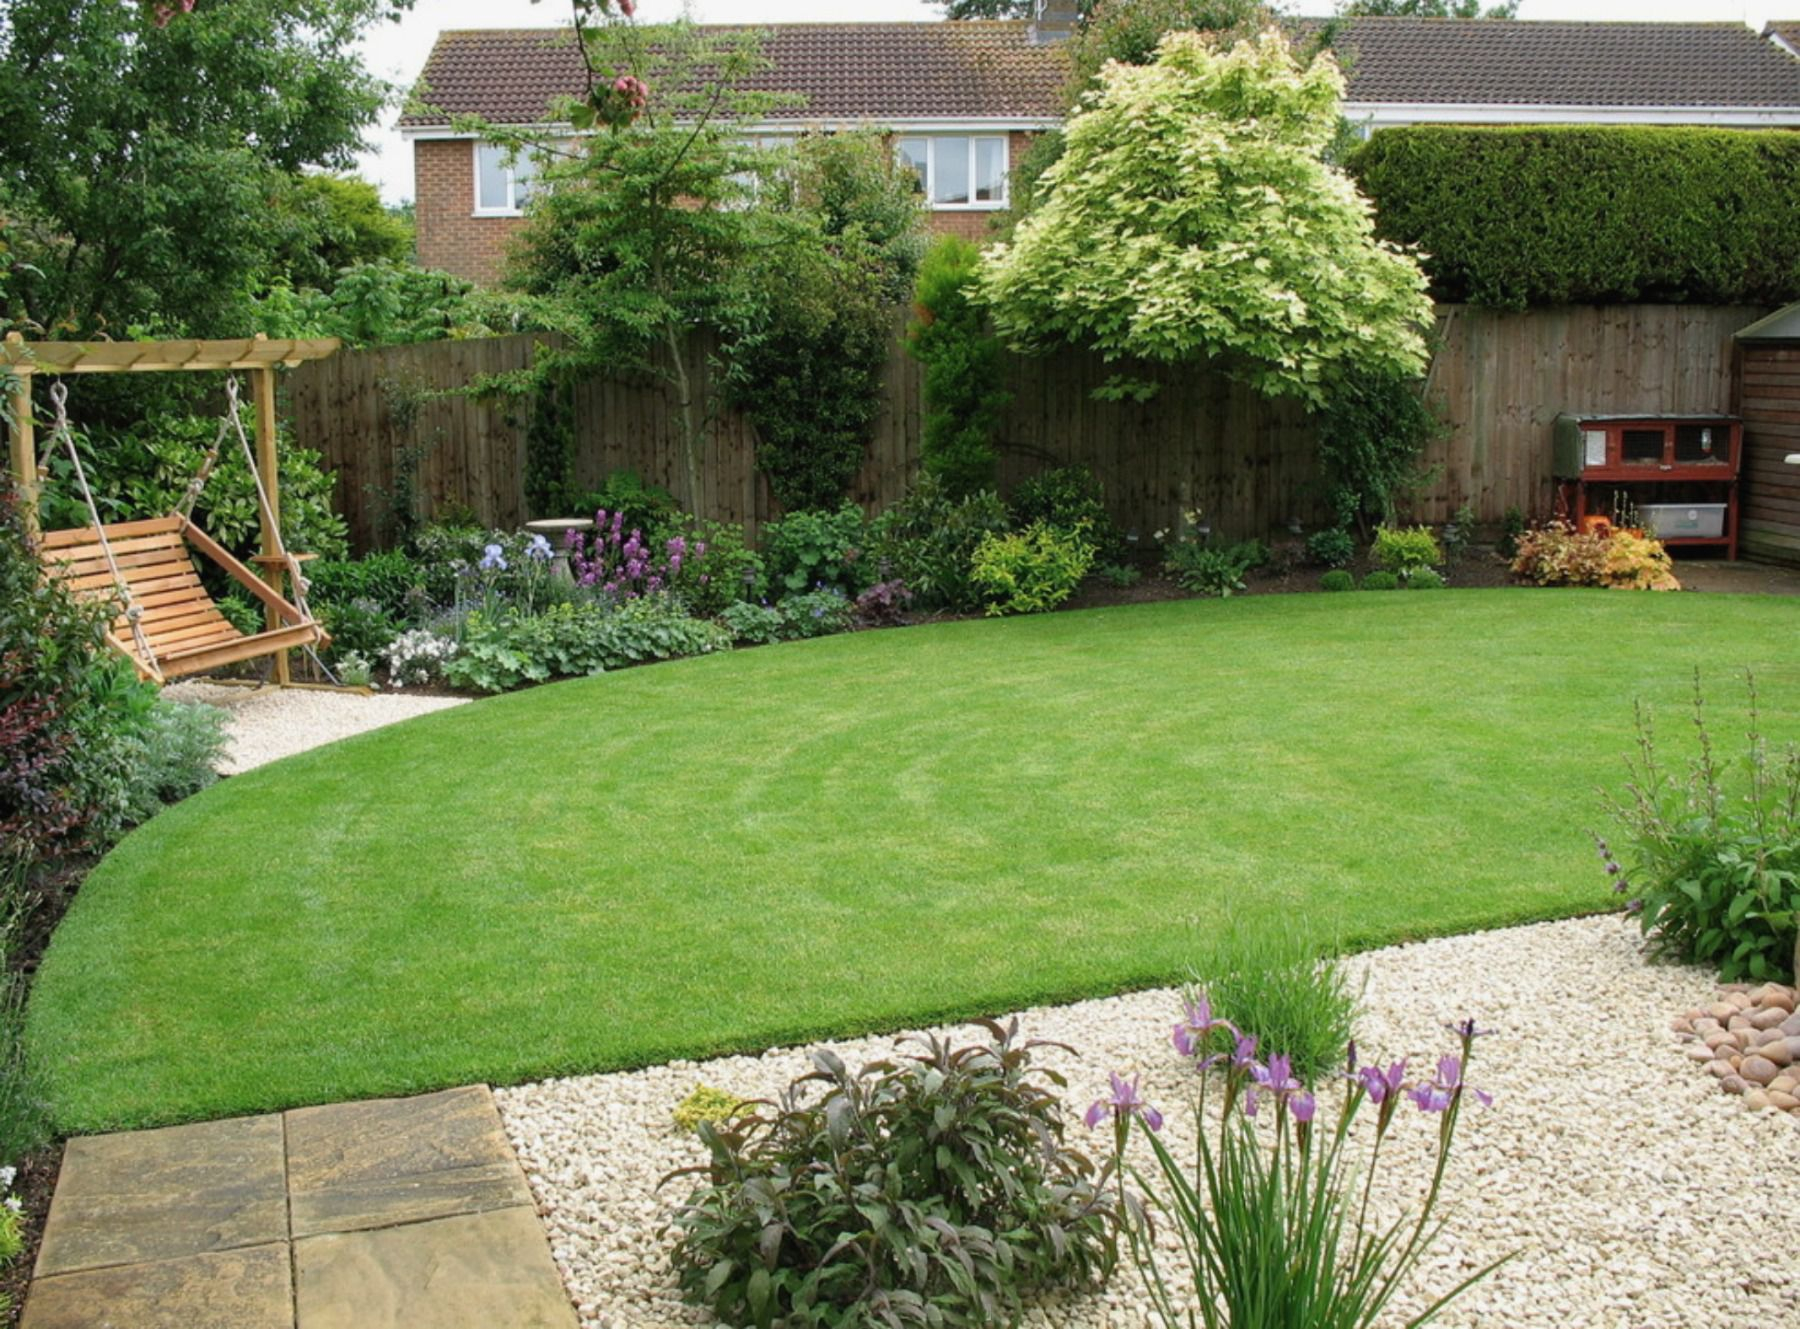 50 Backyard Landscaping Ideas To Inspire You within Backyard Landscapes